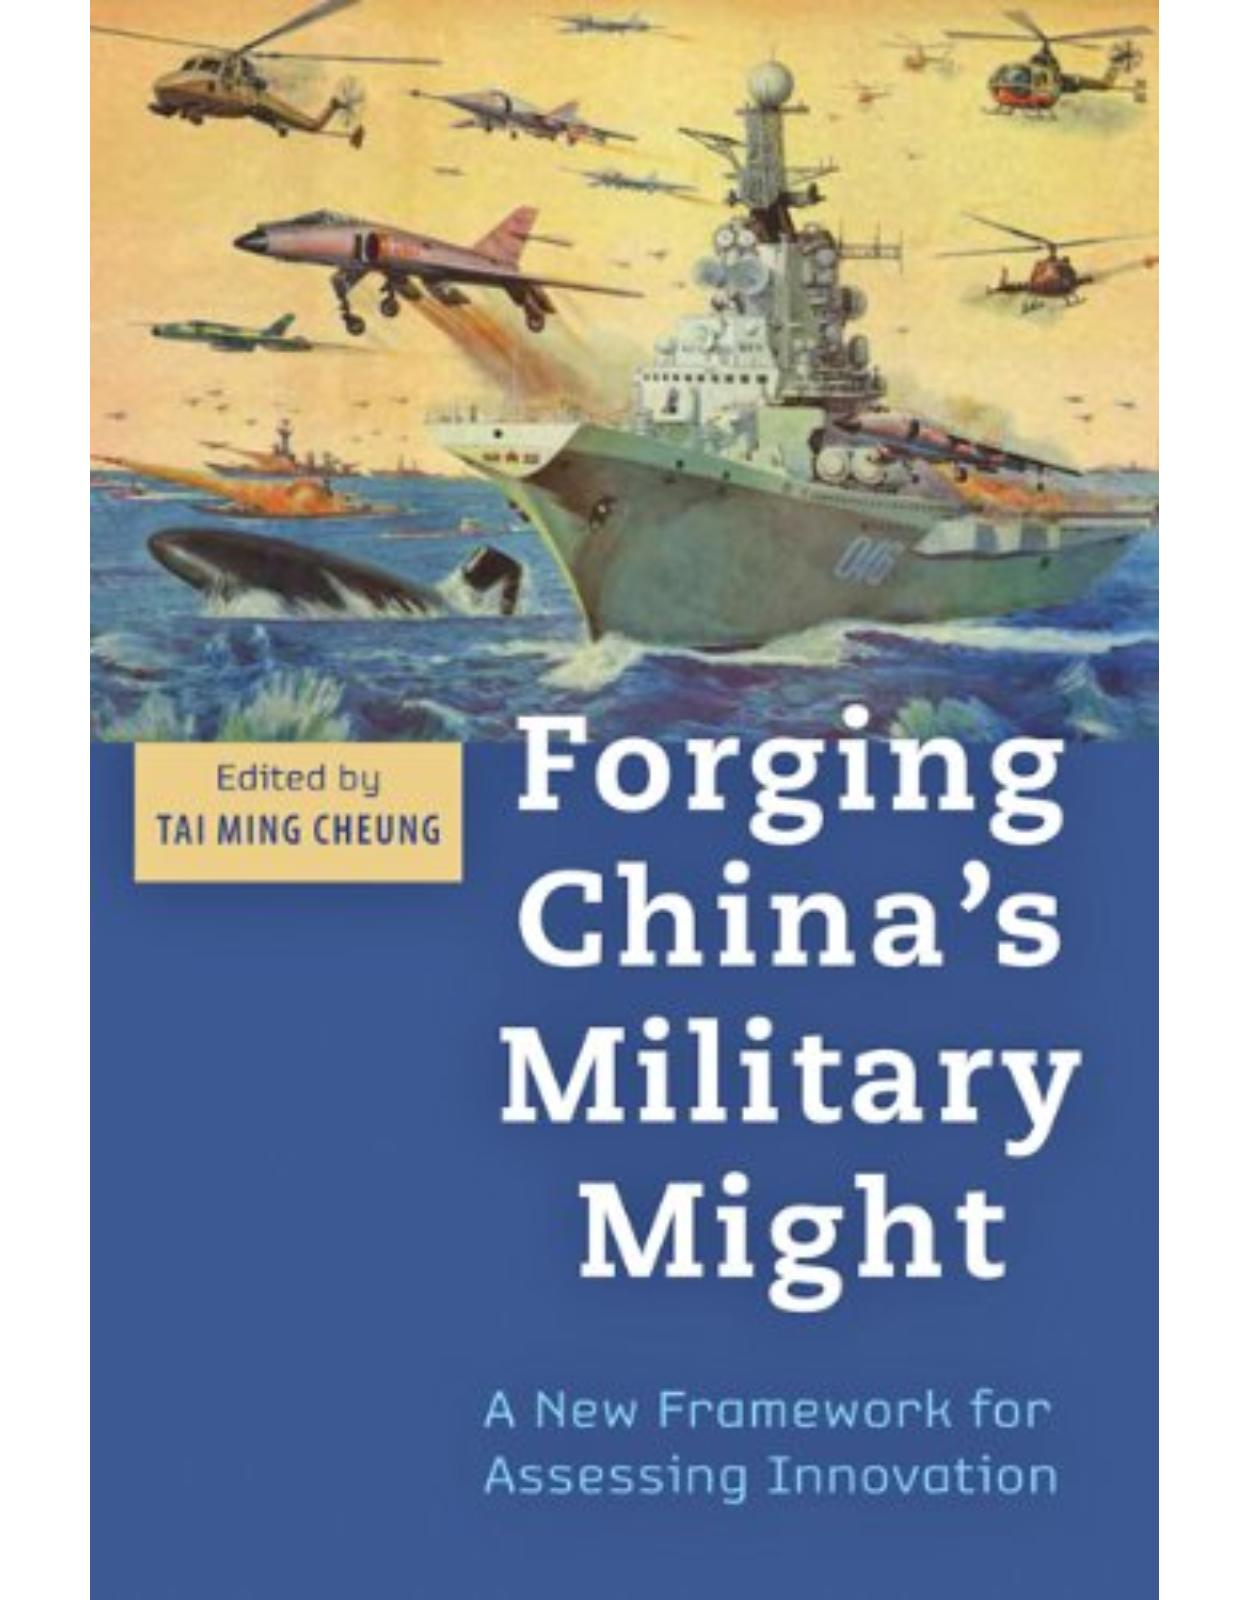 Forging China's Military Might, A New Framework for Assessing Innovation